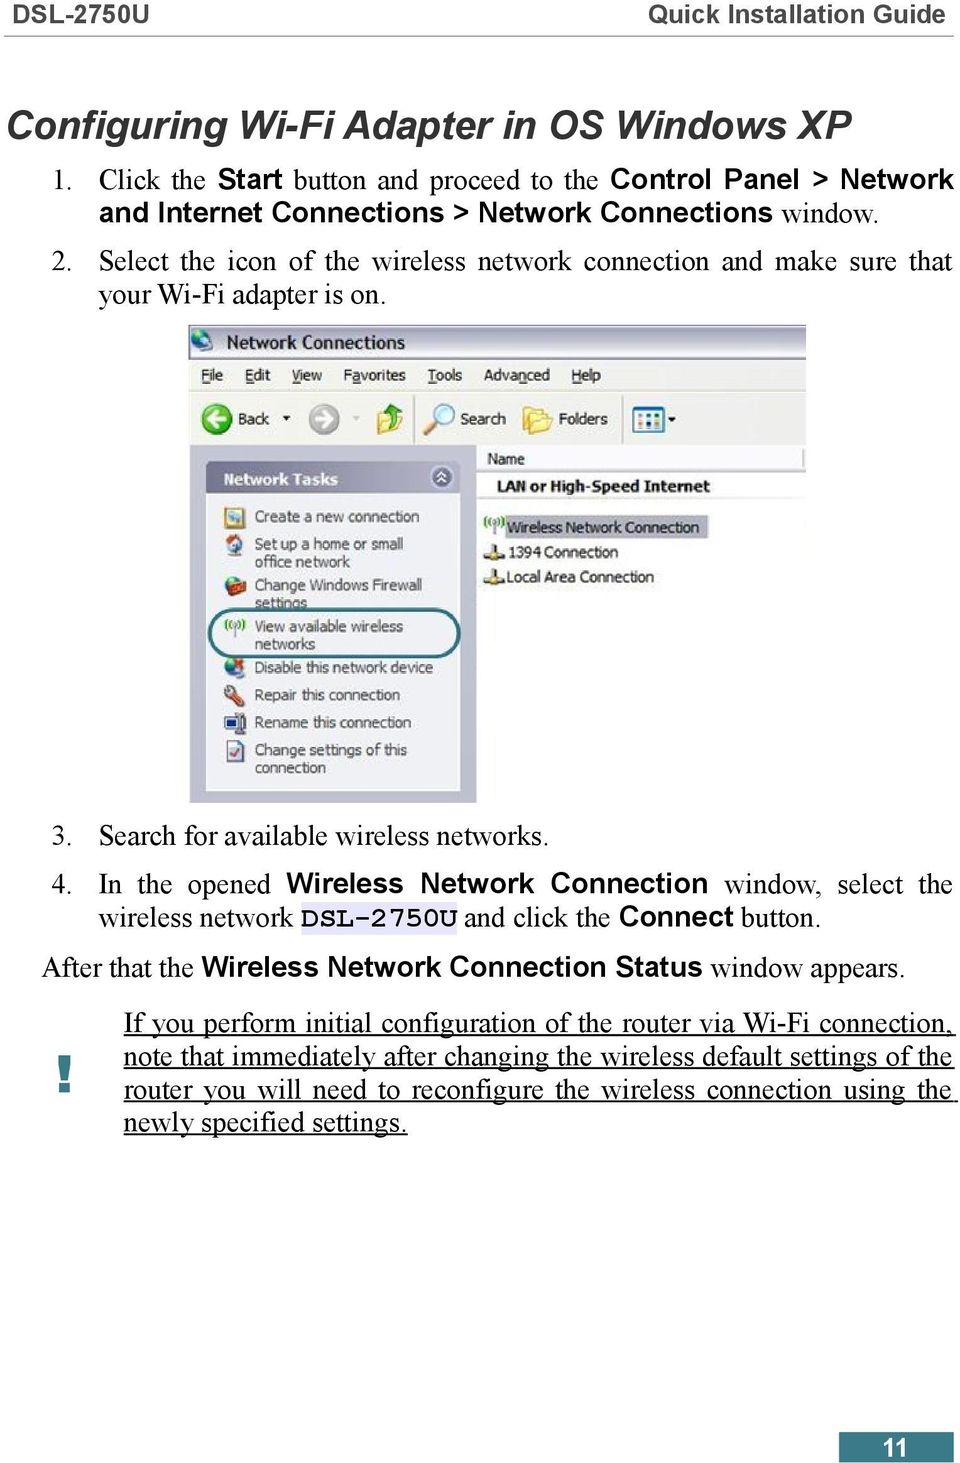 In the opened Wireless Network Connection window, select the wireless network DSL-2750U and click the Connect button. After that the Wireless Network Connection Status window appears.